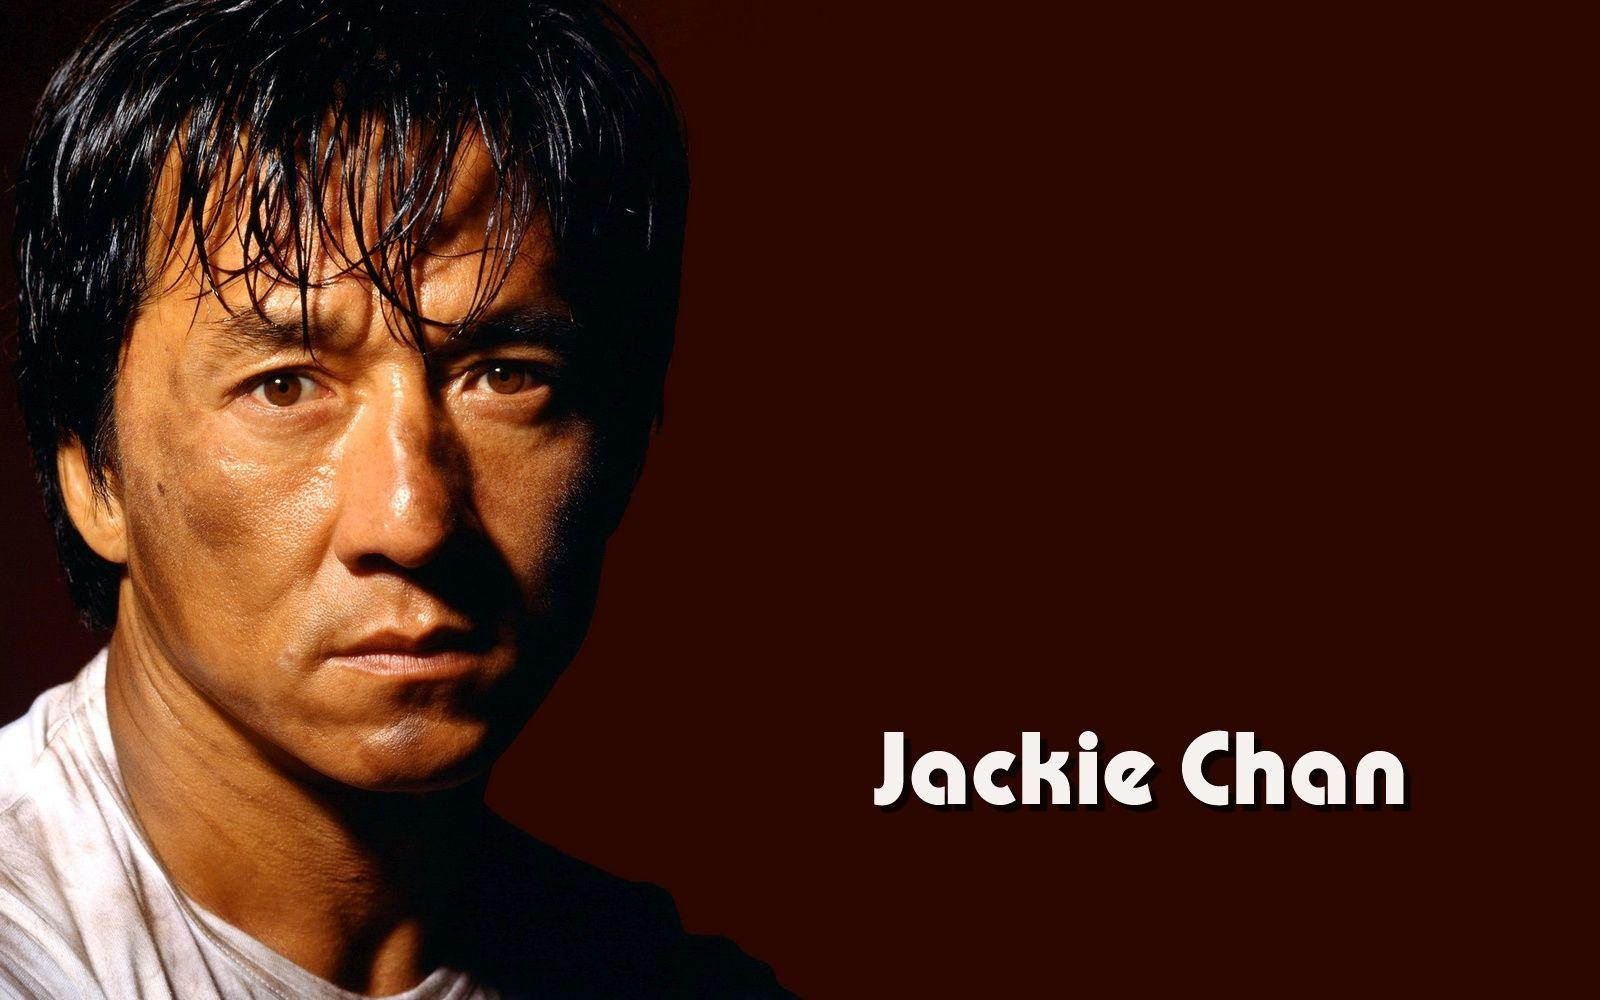 Jackie Chan Wallpapers - Wallpaper Cave